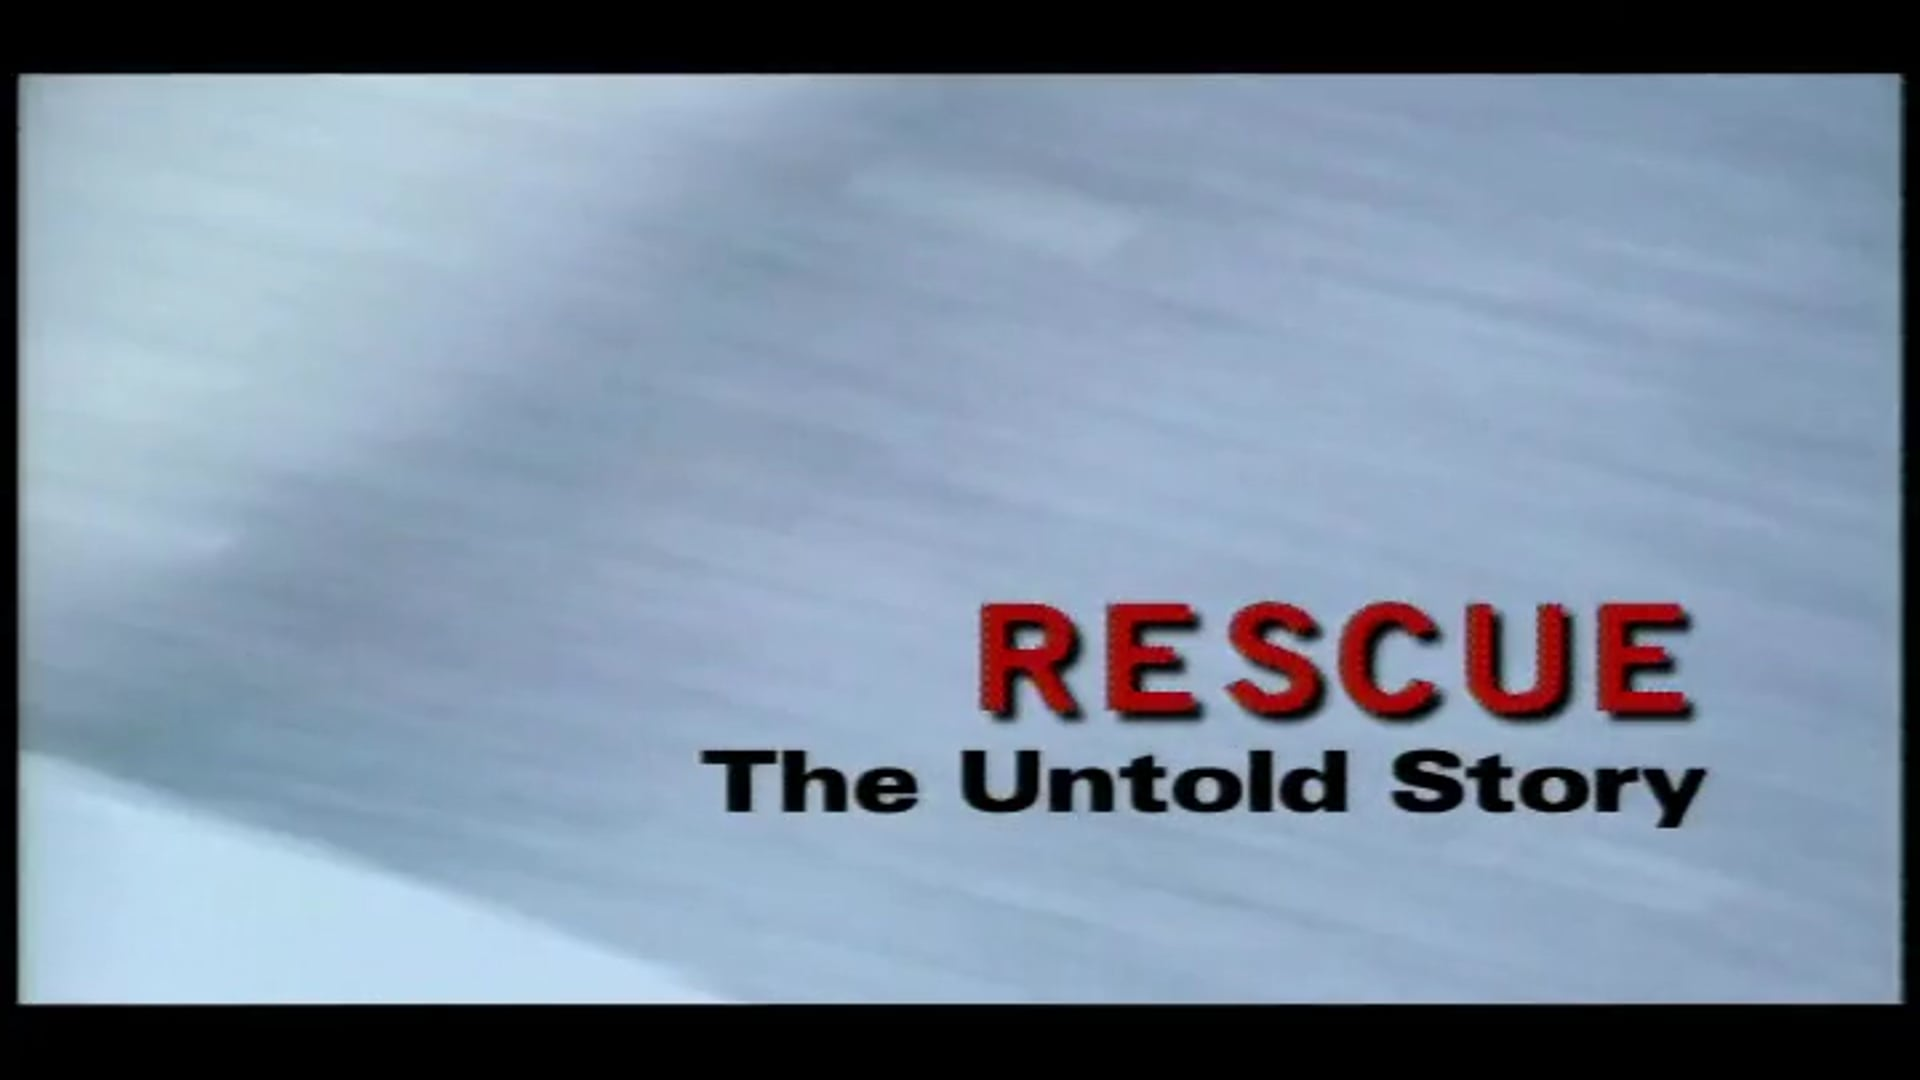 Rescue: The Untold Story